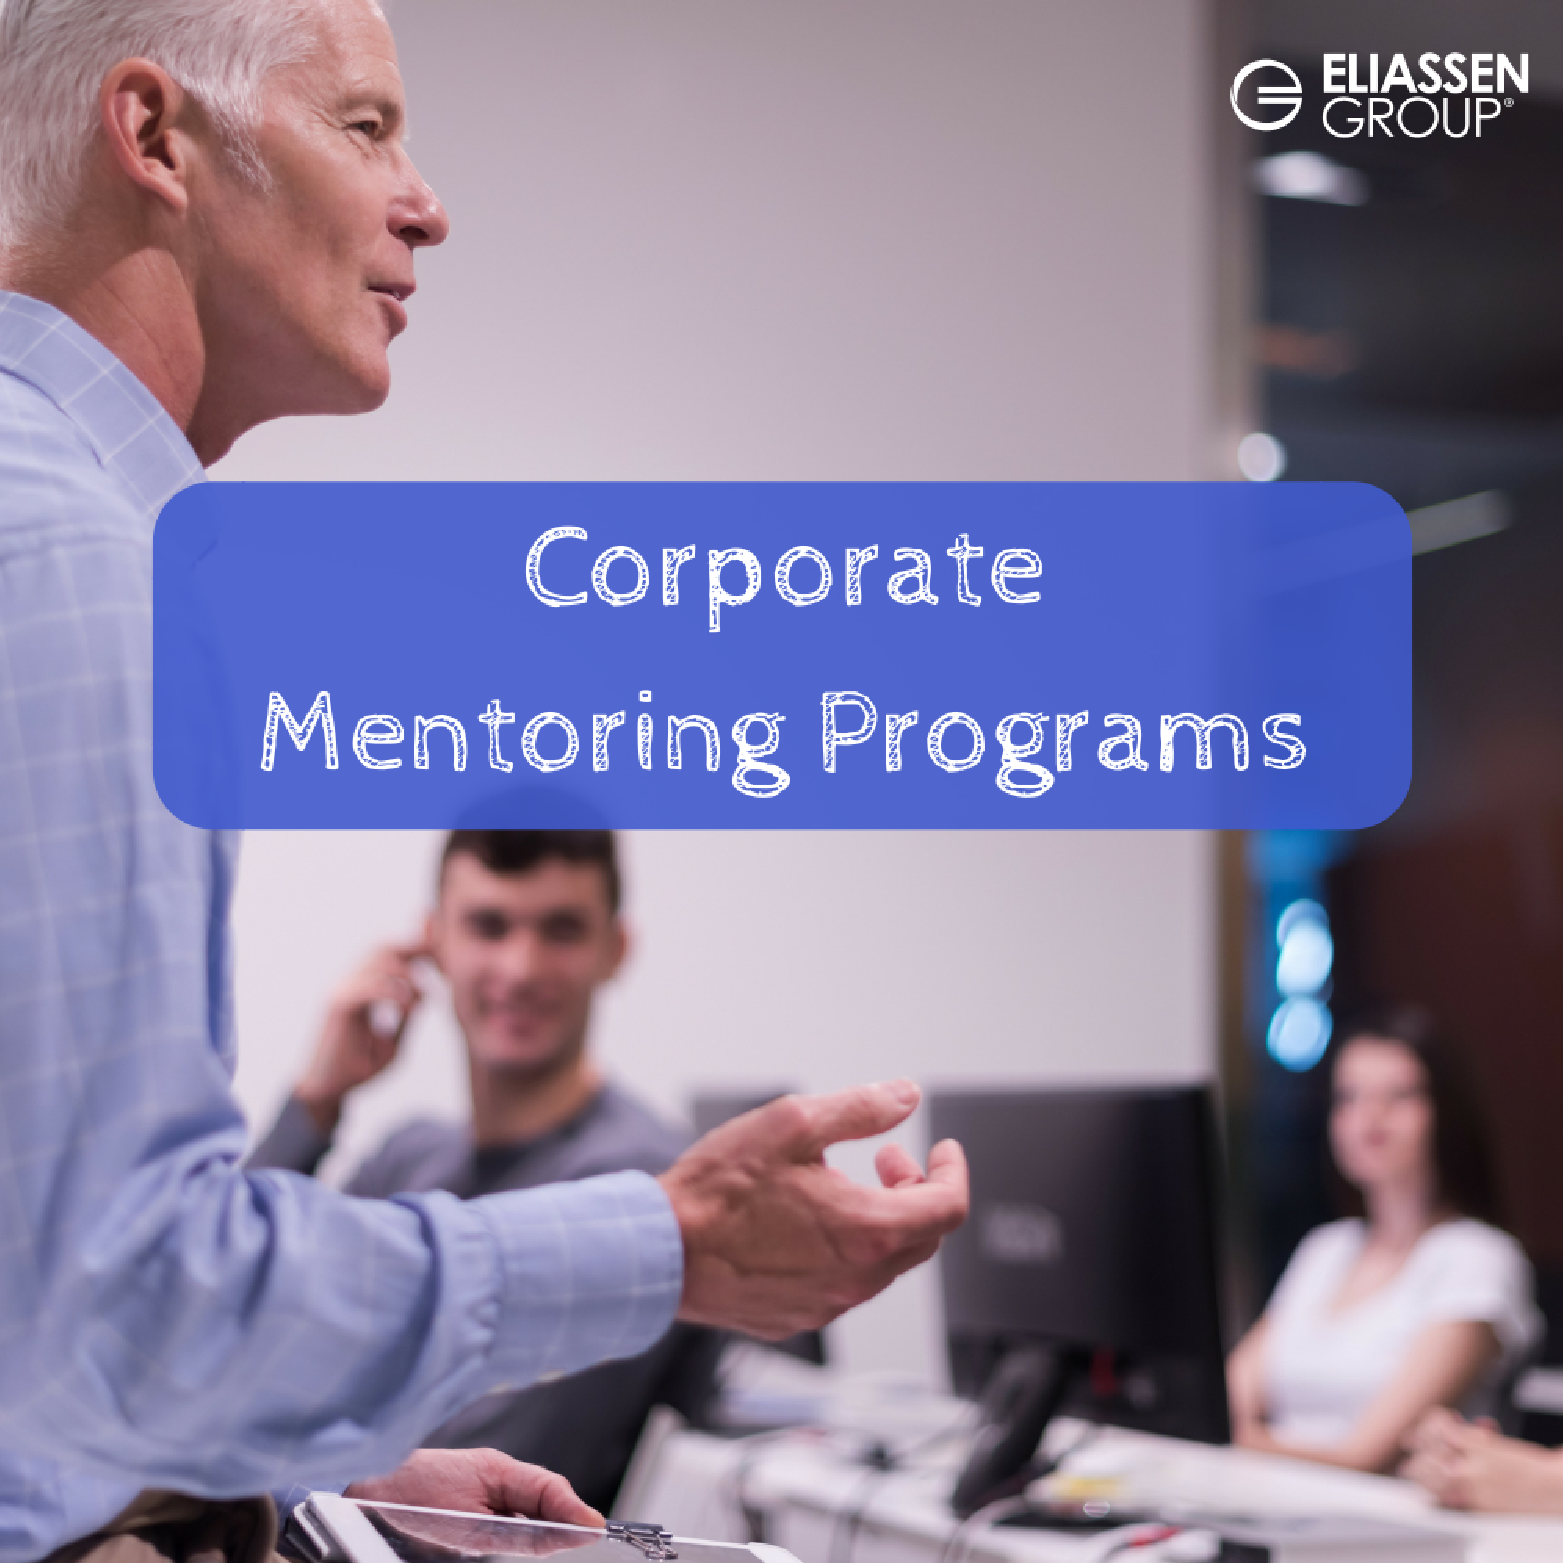 The True Value of Corporate Mentoring Programs